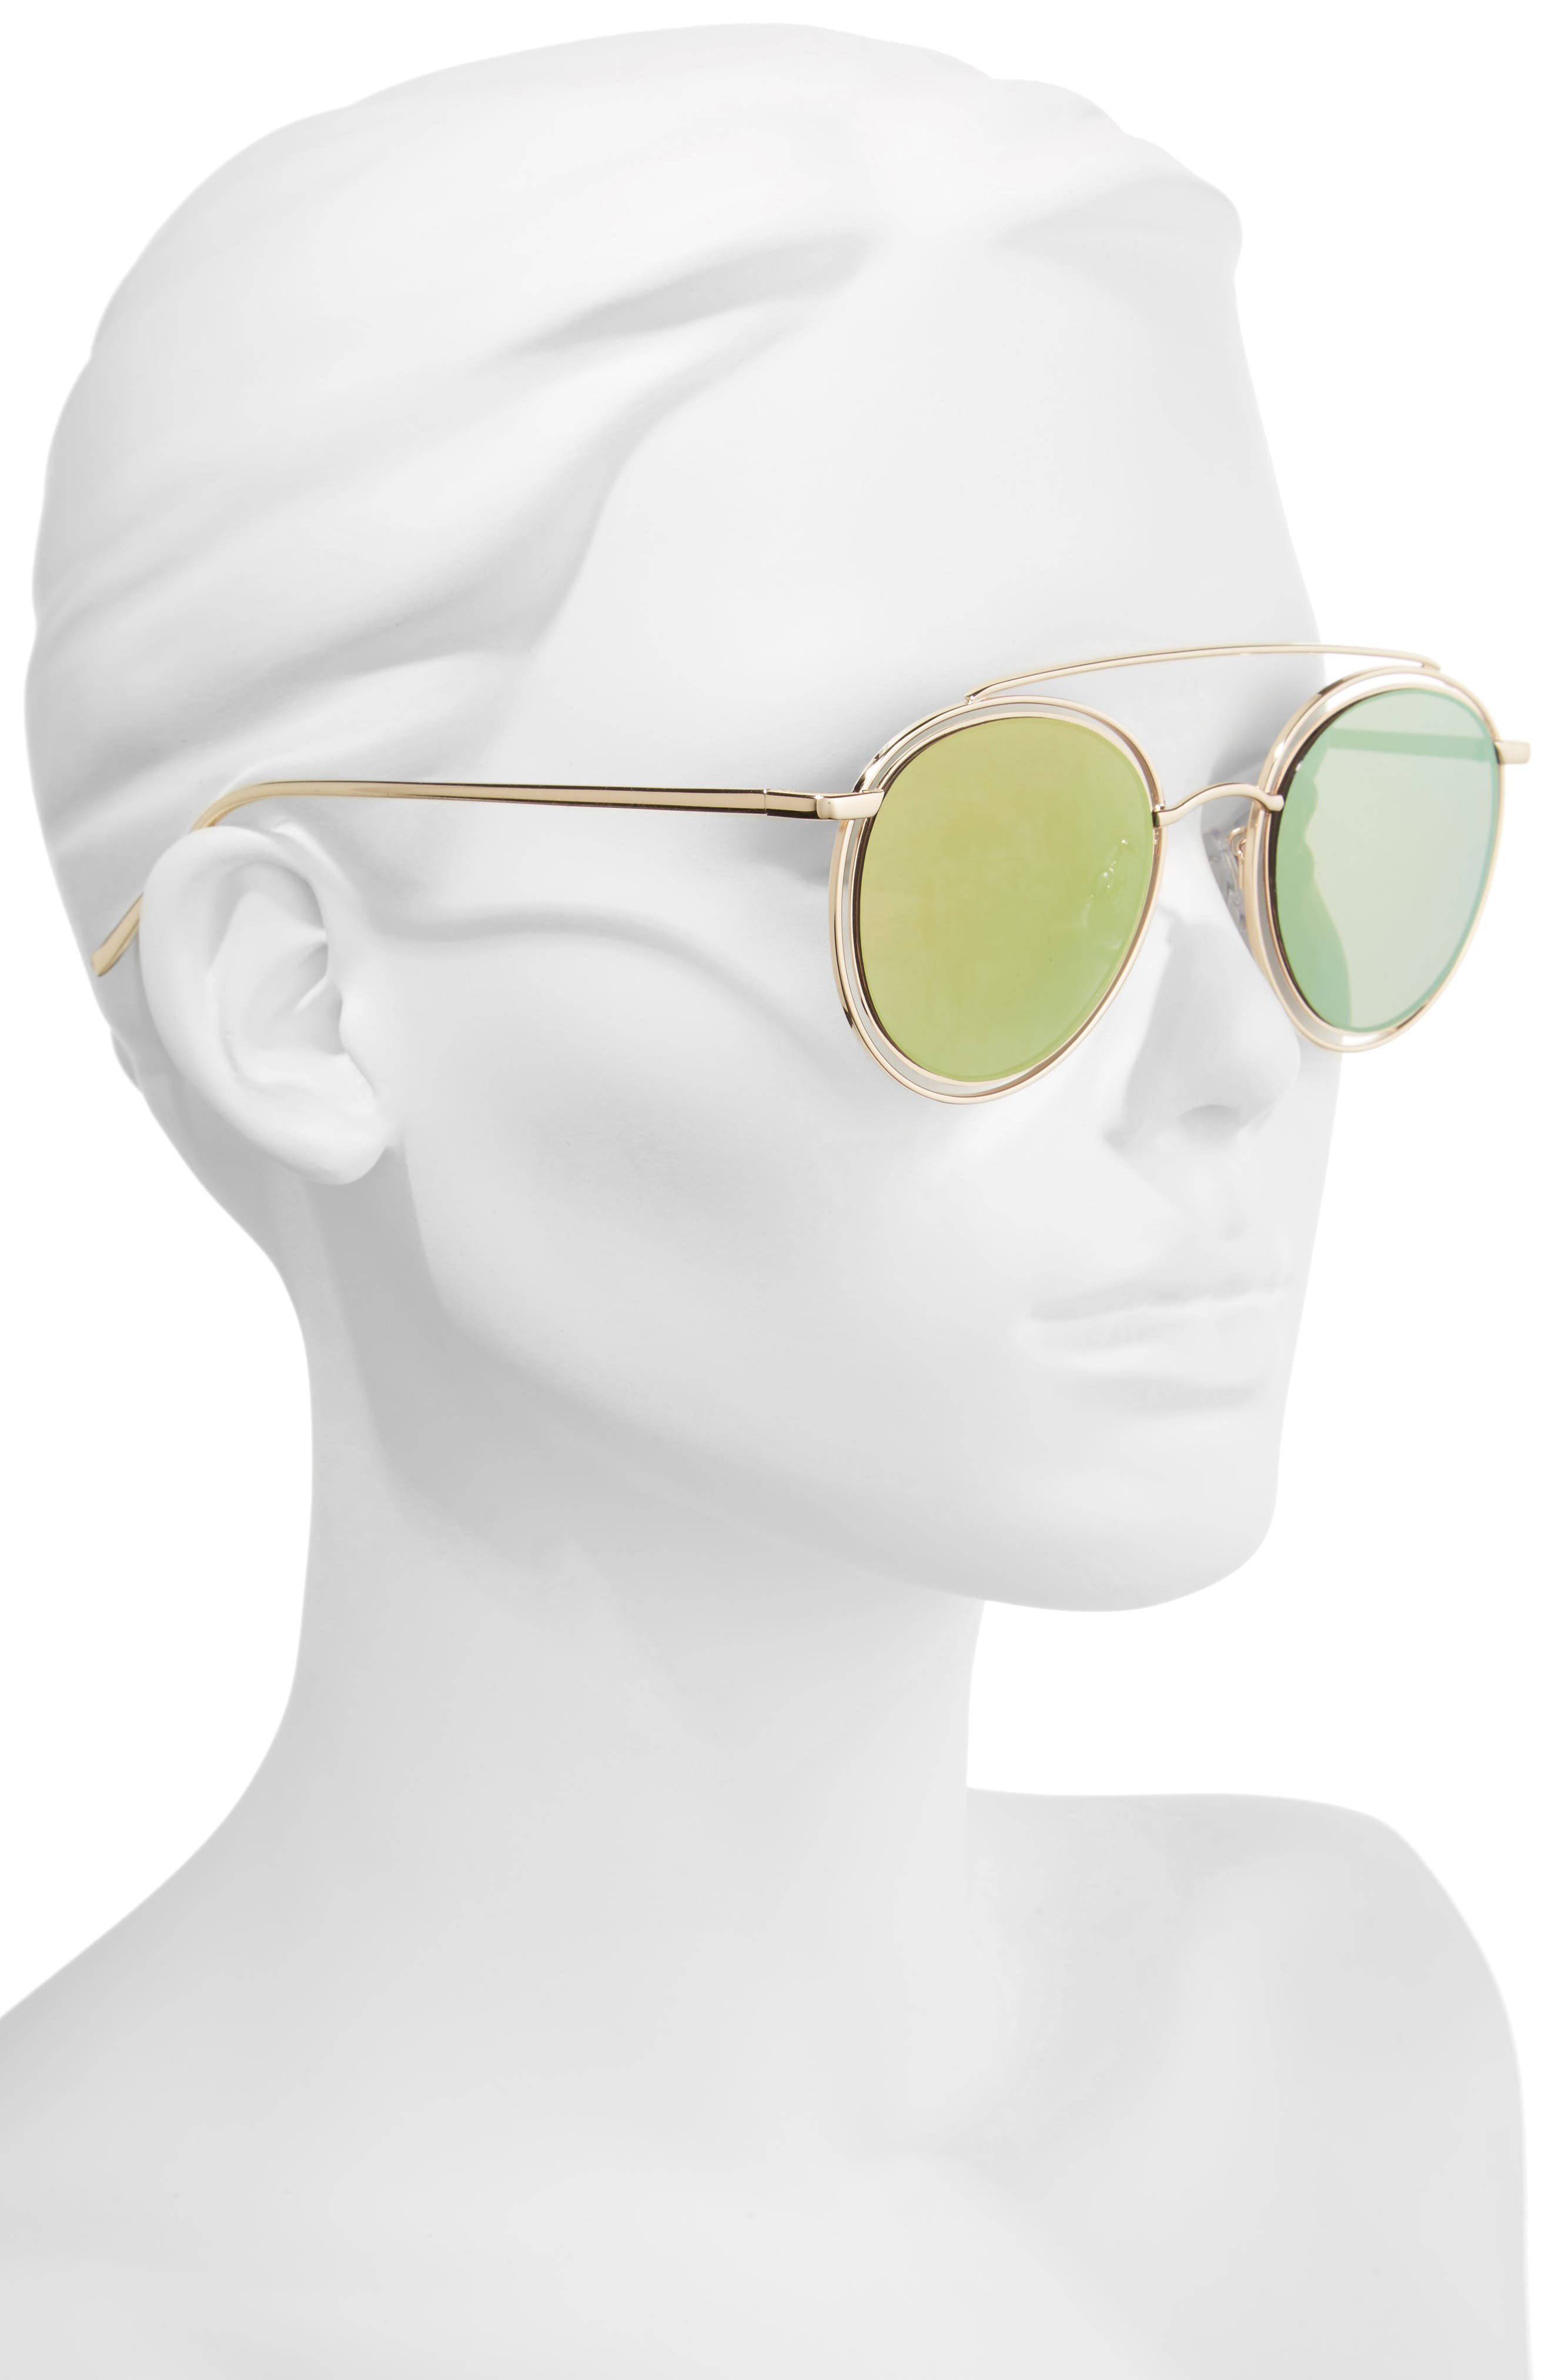 50mm Browbar Sunglasses,                             Alternate thumbnail 2, color,                             GOLD/ PINK